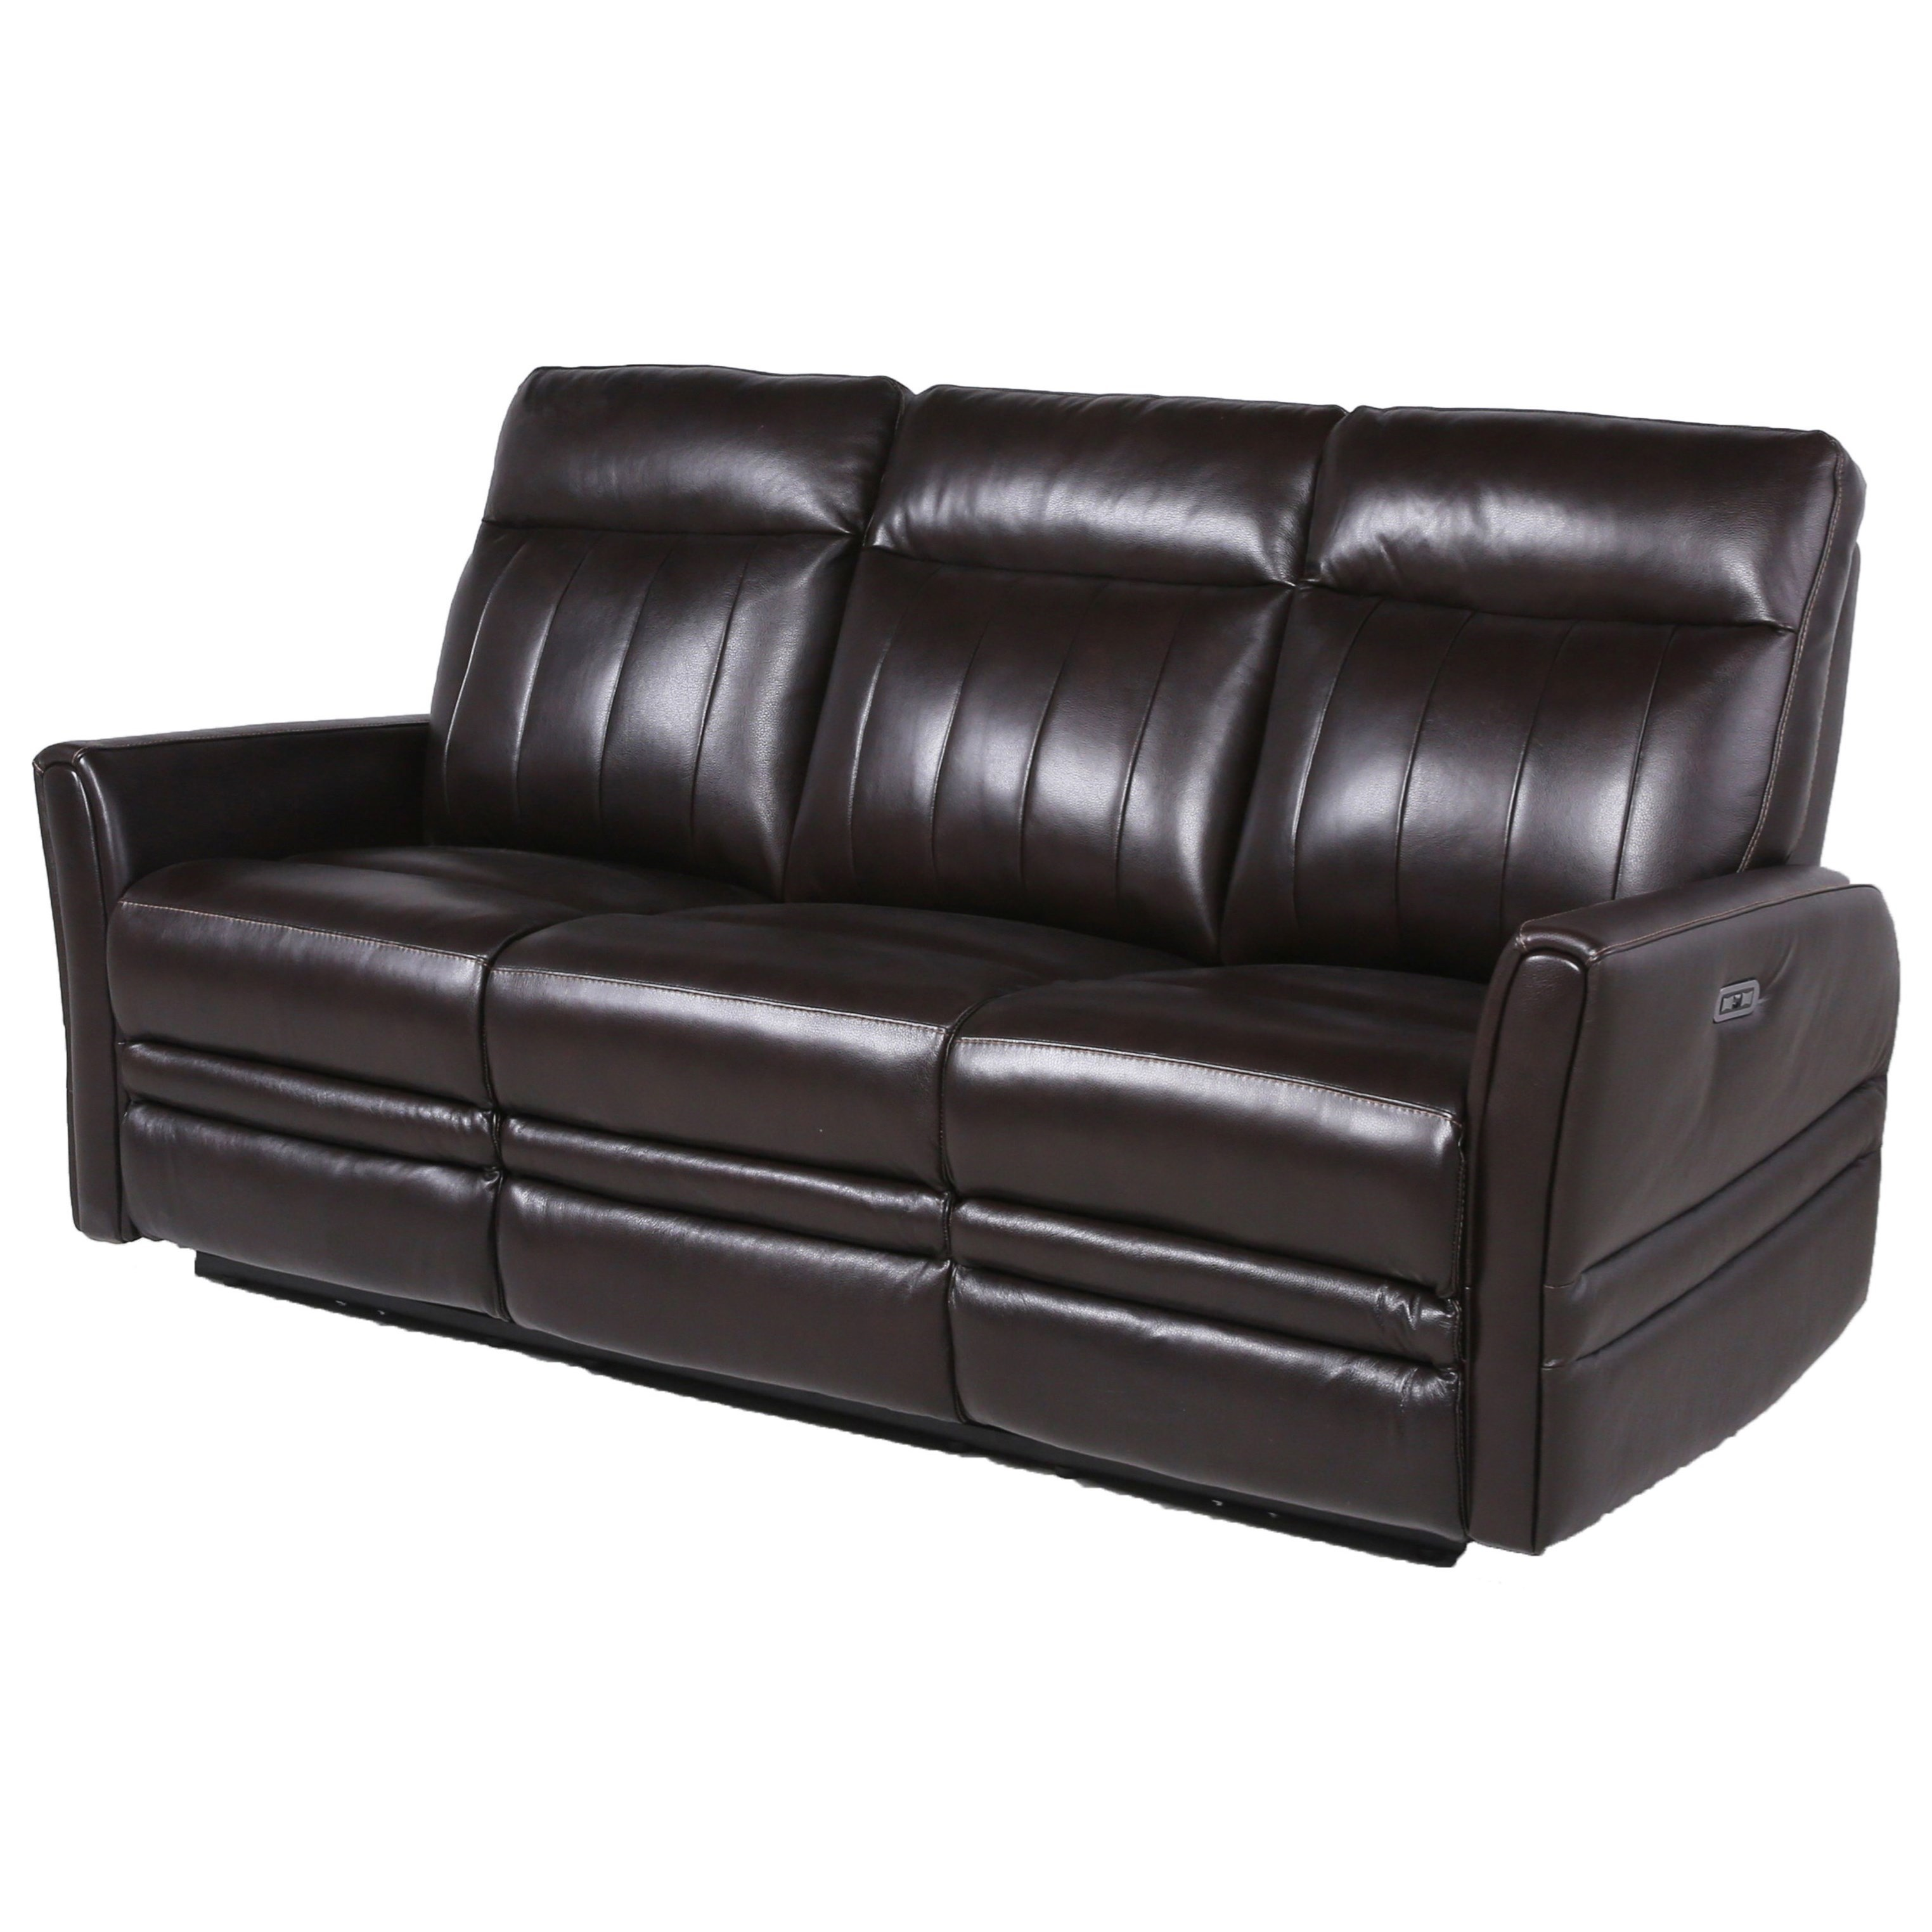 Coachella Power Reclining Sofa by Steve Silver at Northeast Factory Direct